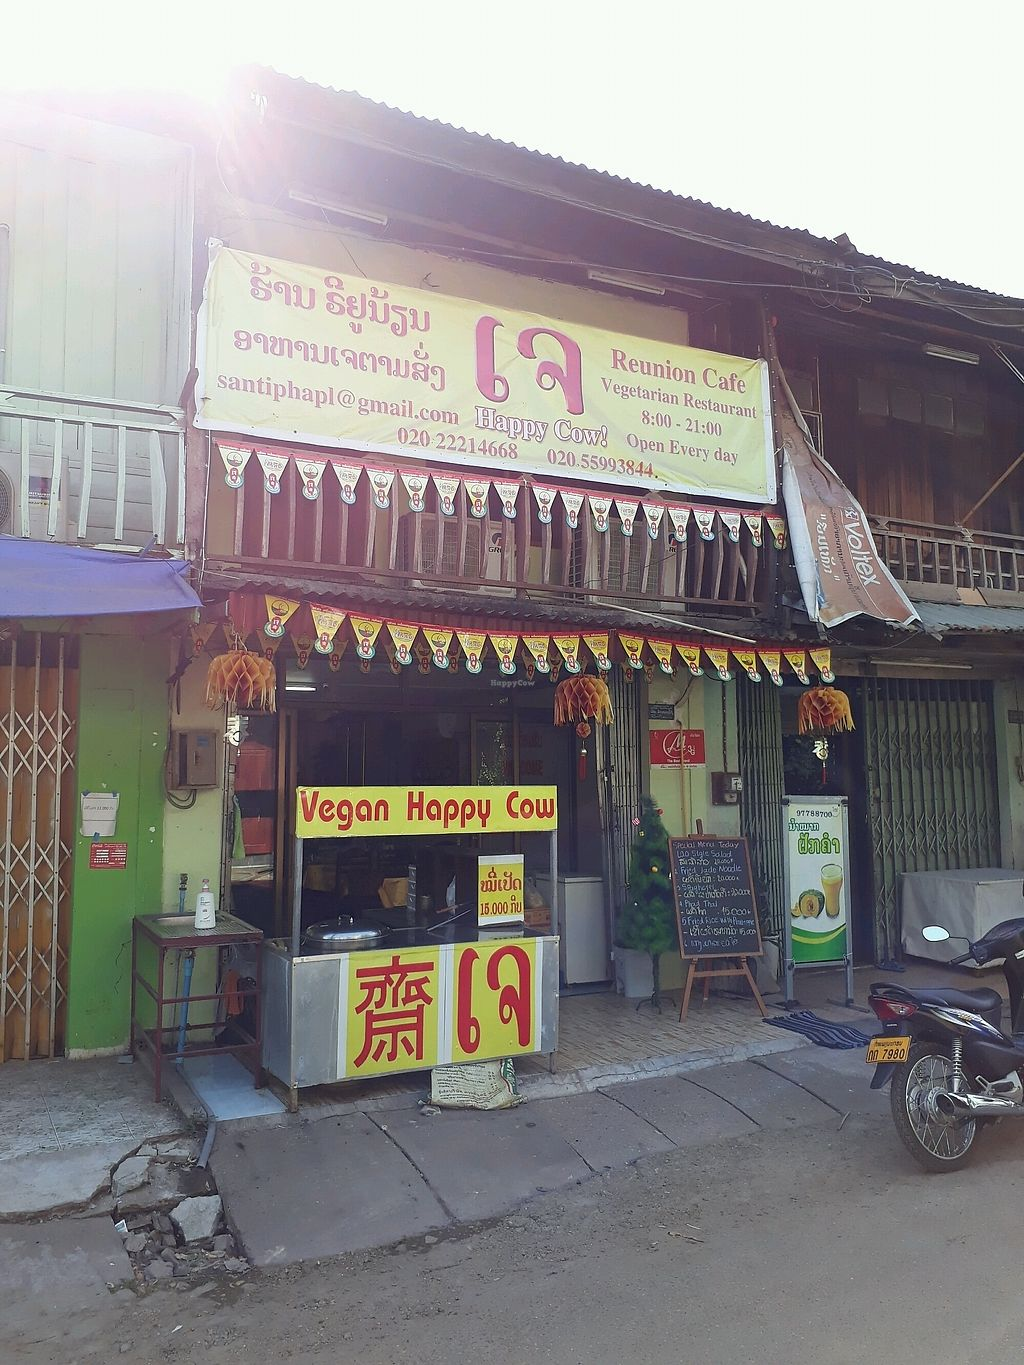 """Photo of Reunion Cafe  by <a href=""""/members/profile/LilacHippy"""">LilacHippy</a> <br/>Outside Restaurant <br/> December 19, 2017  - <a href='/contact/abuse/image/28301/337281'>Report</a>"""